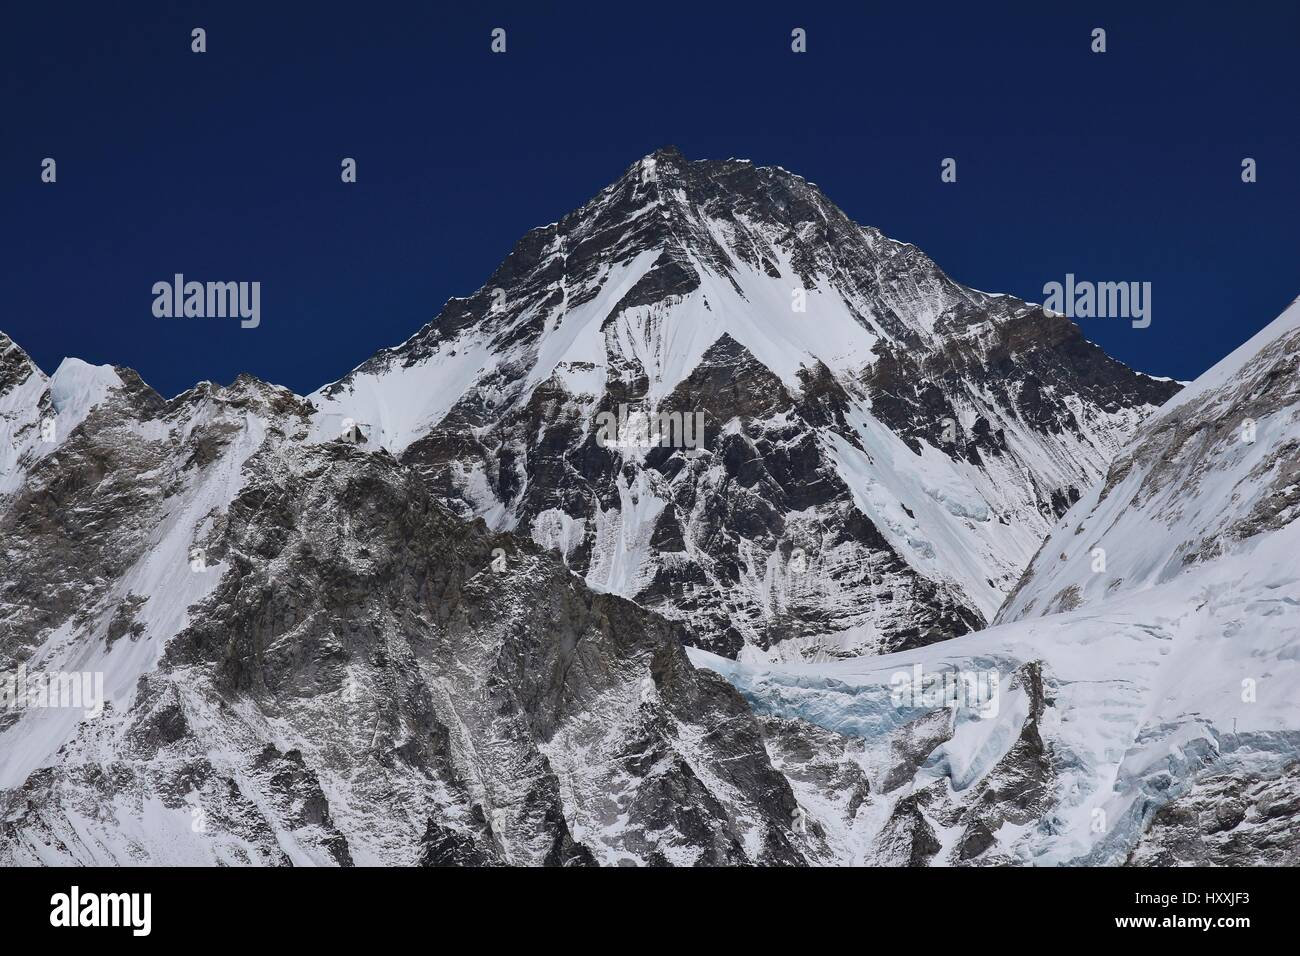 Khumbutse. High mountain on the border from Nepal and China. View from Kala Patthar, Everest National Park. - Stock Image